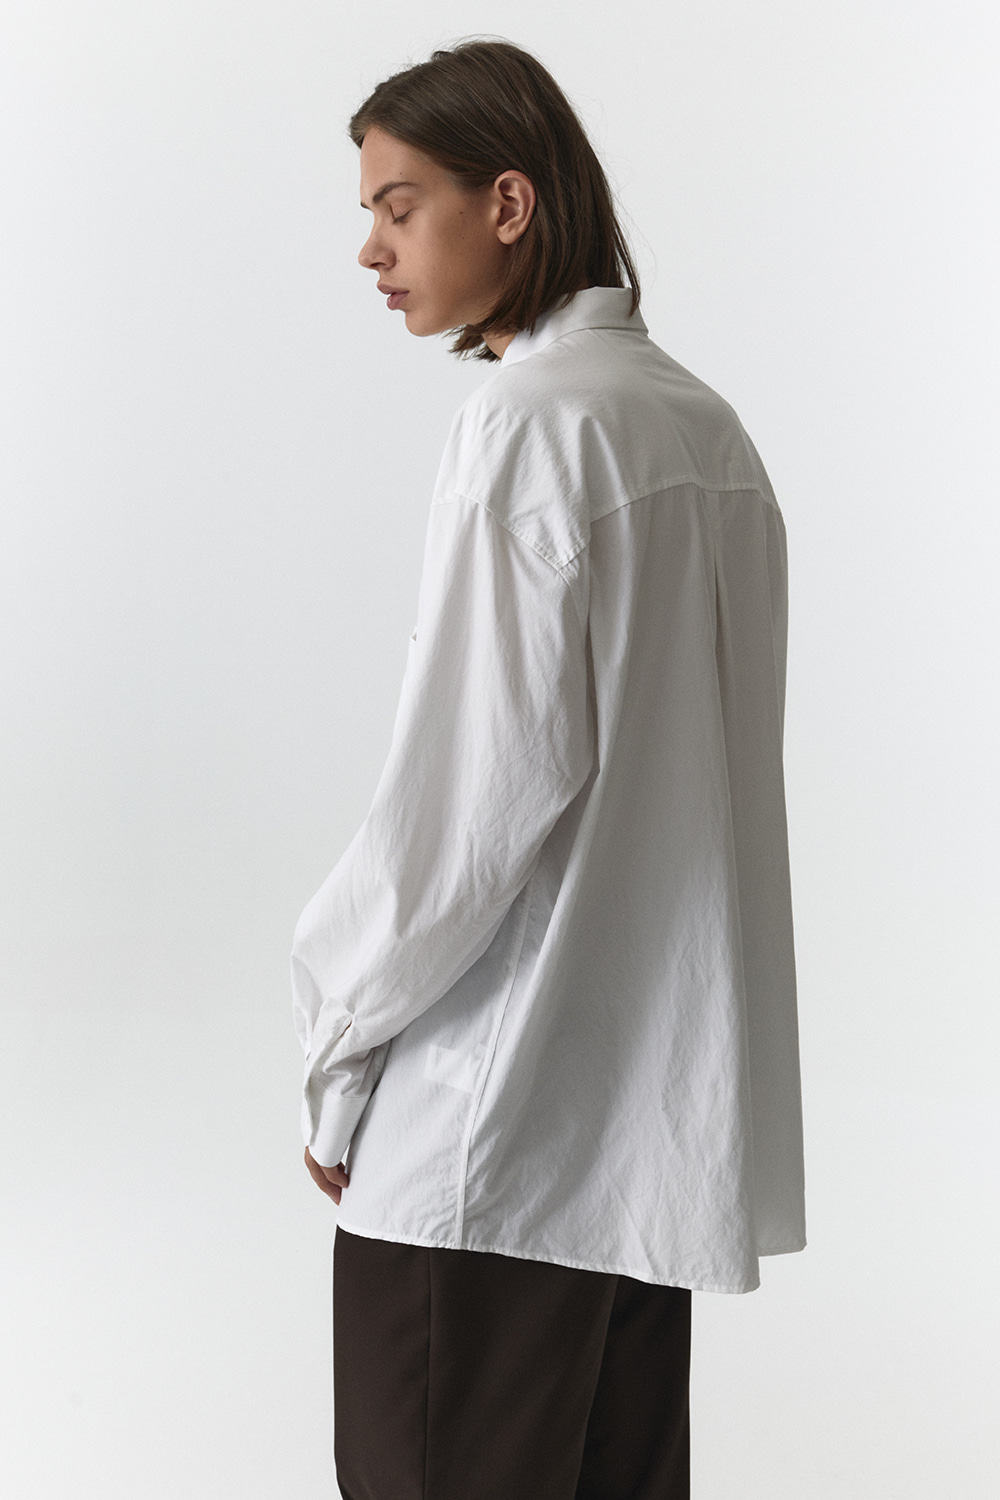 Overfit Shirts Men JA [White]